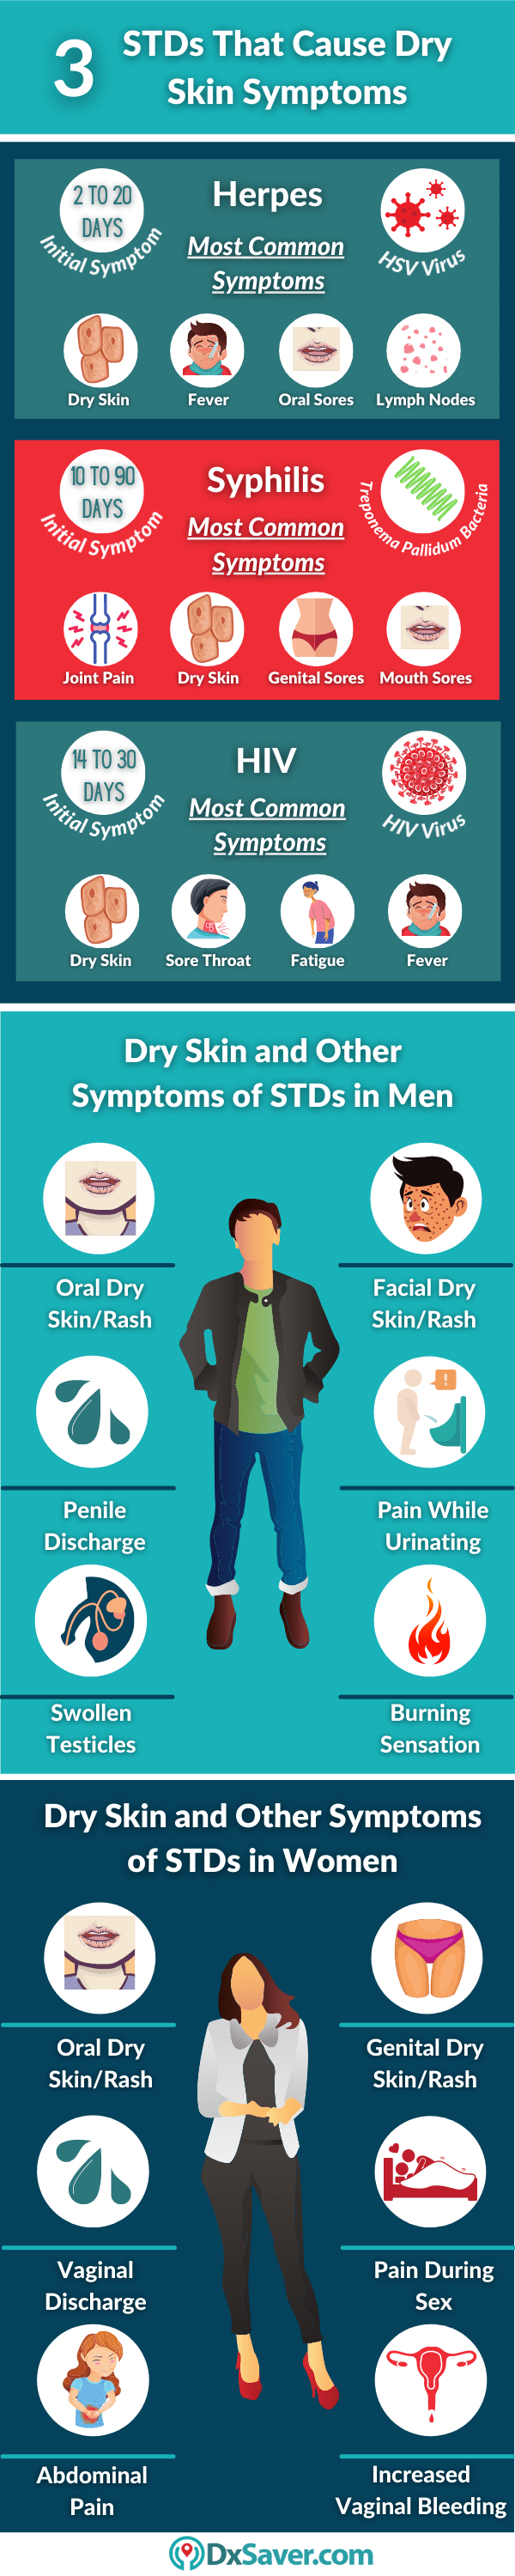 STDs that cause rash, itching and dry skin - other symptoms of STDs in men and women